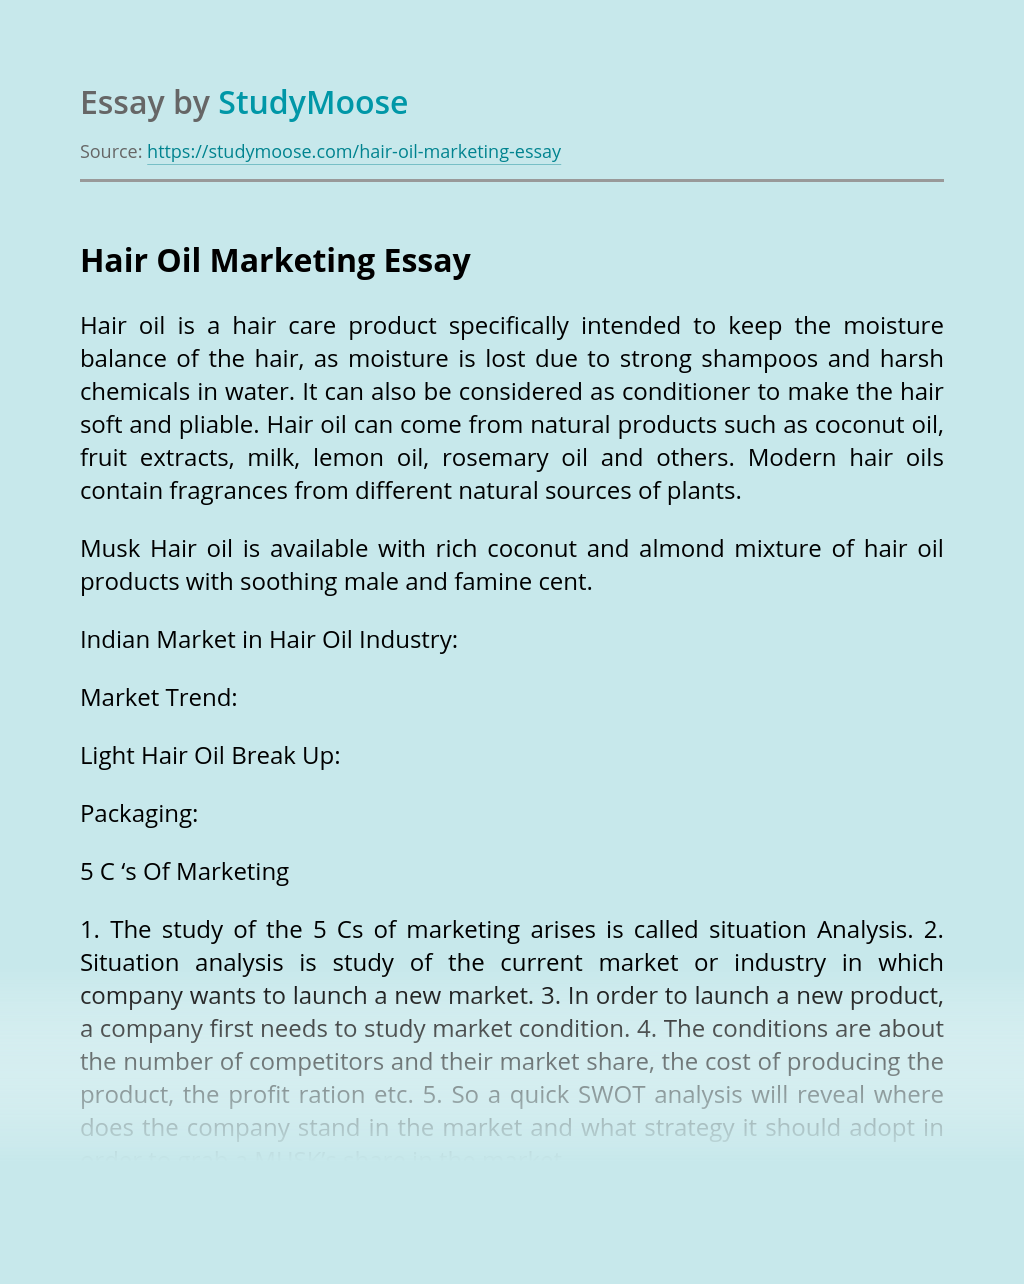 Hair Oil Marketing